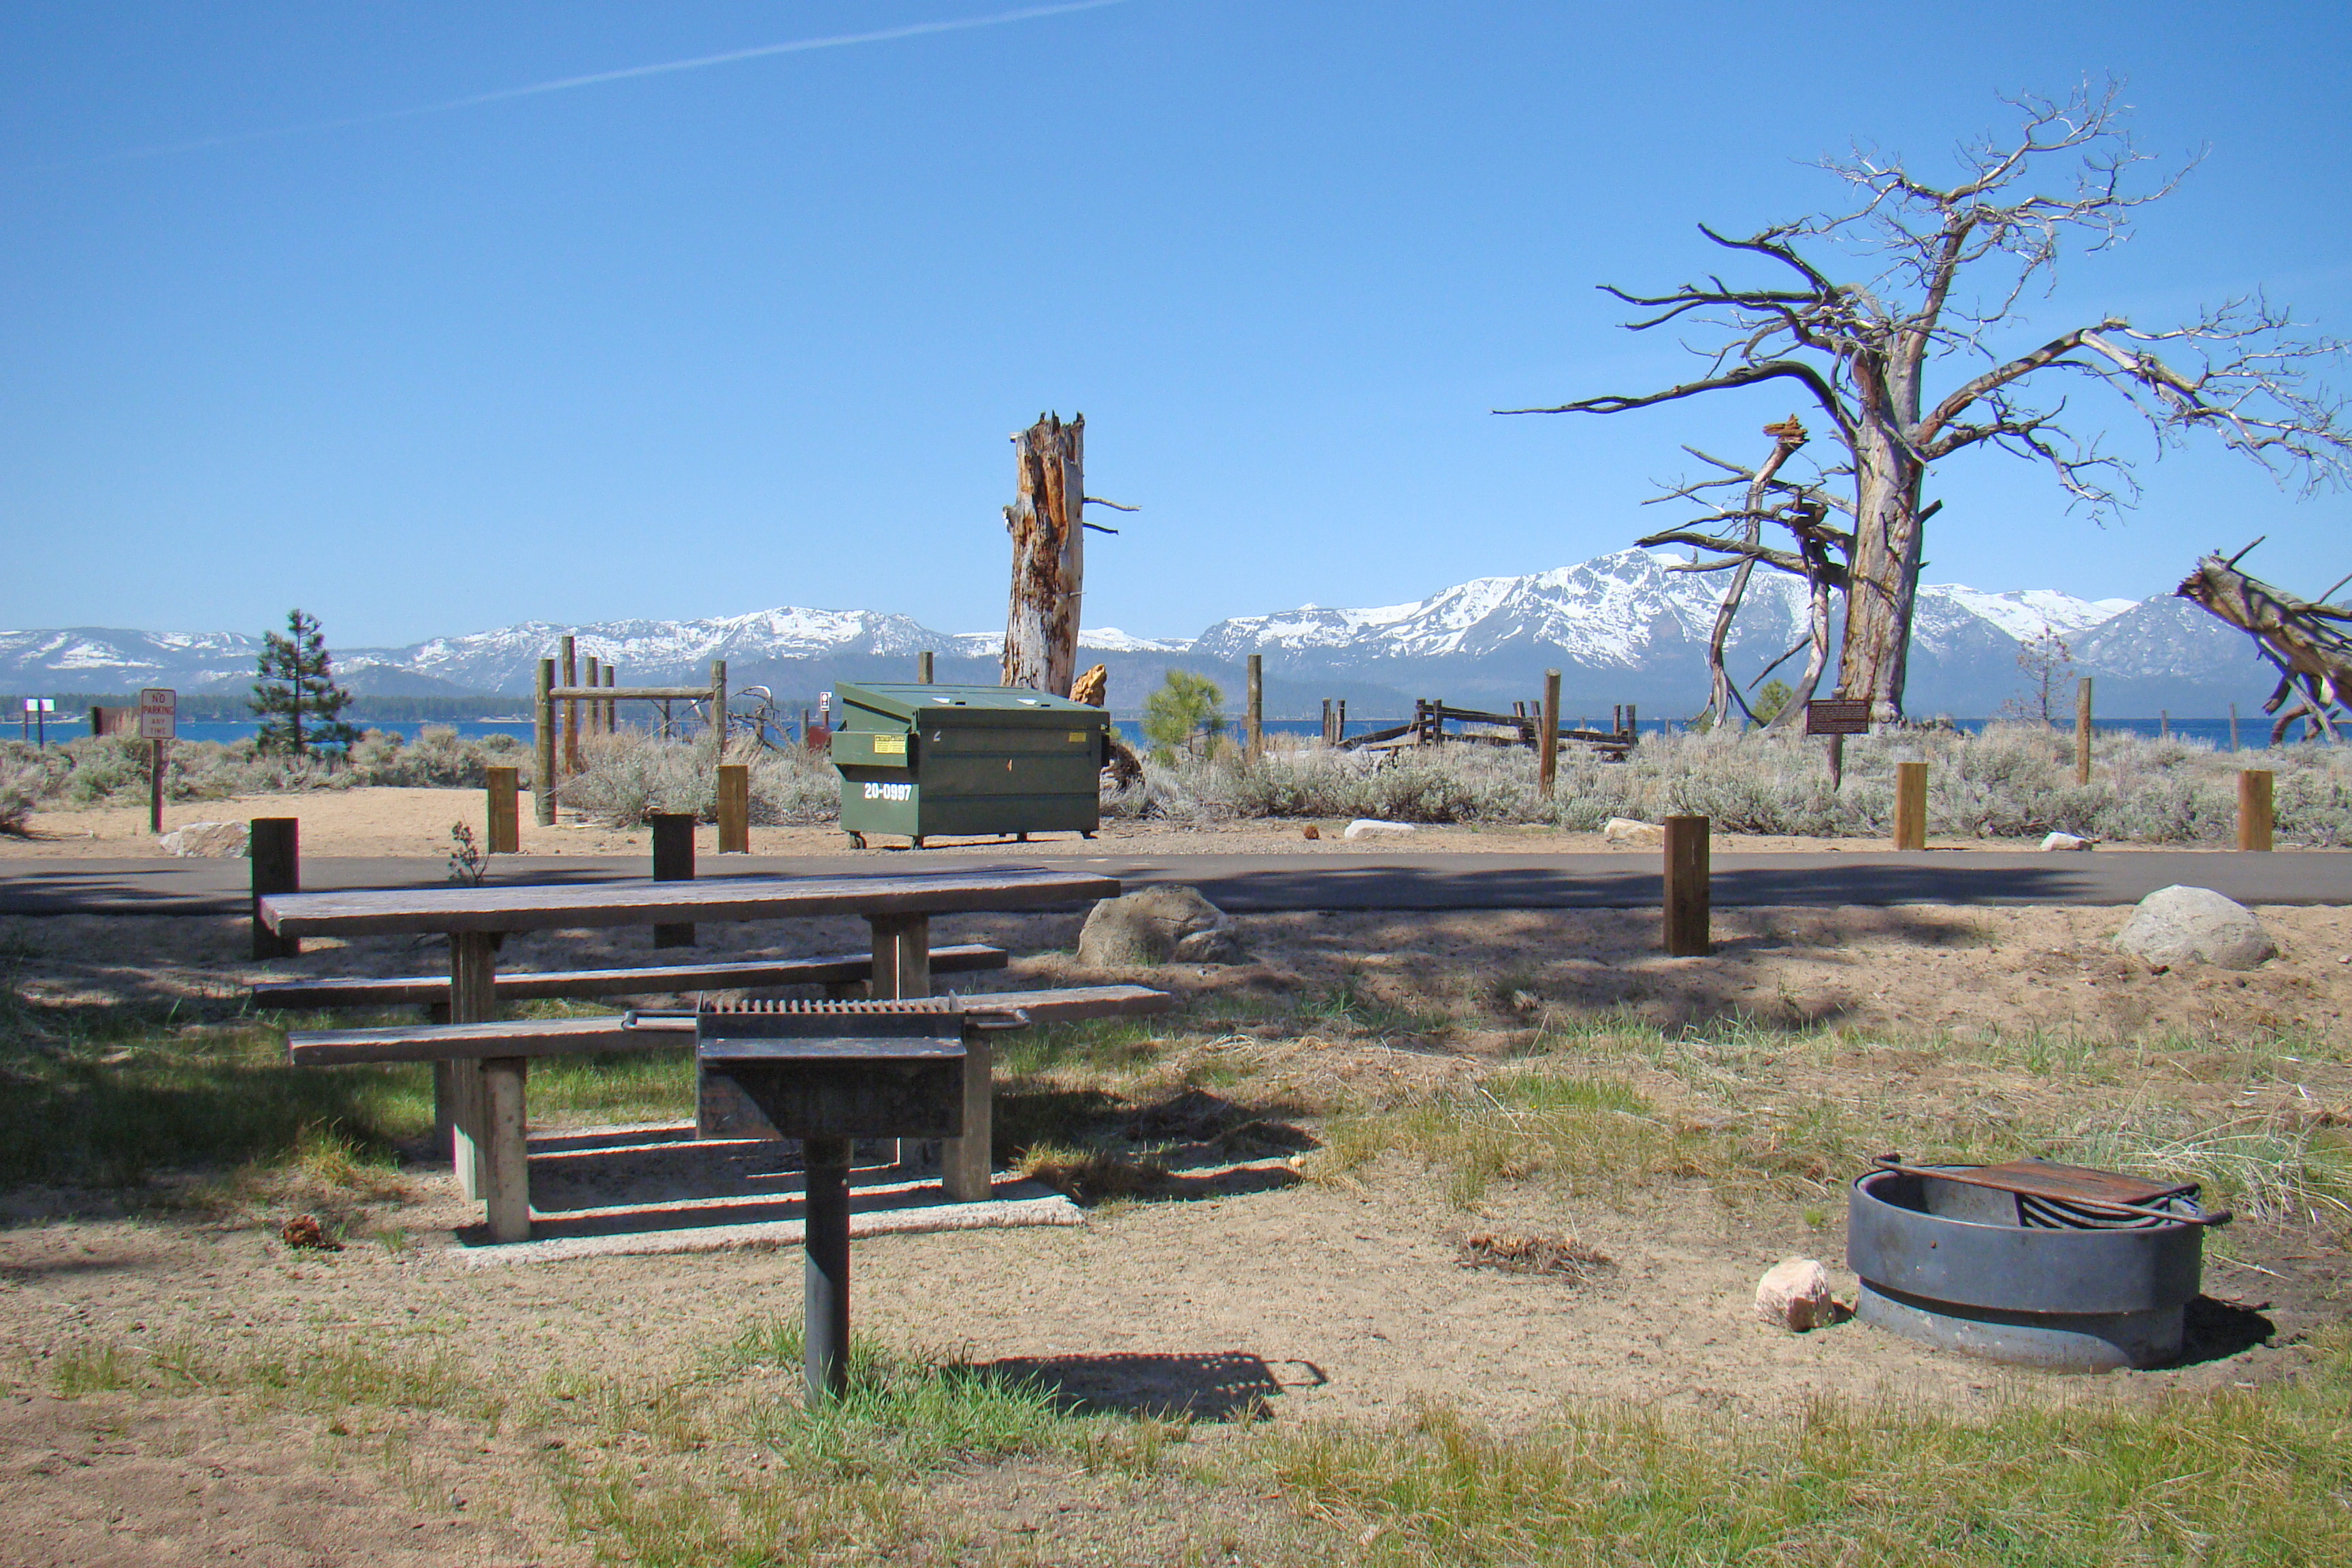 Picnic table, campfire ring and stand up grill at Nevada Beach with Lake Tahoe in the background.